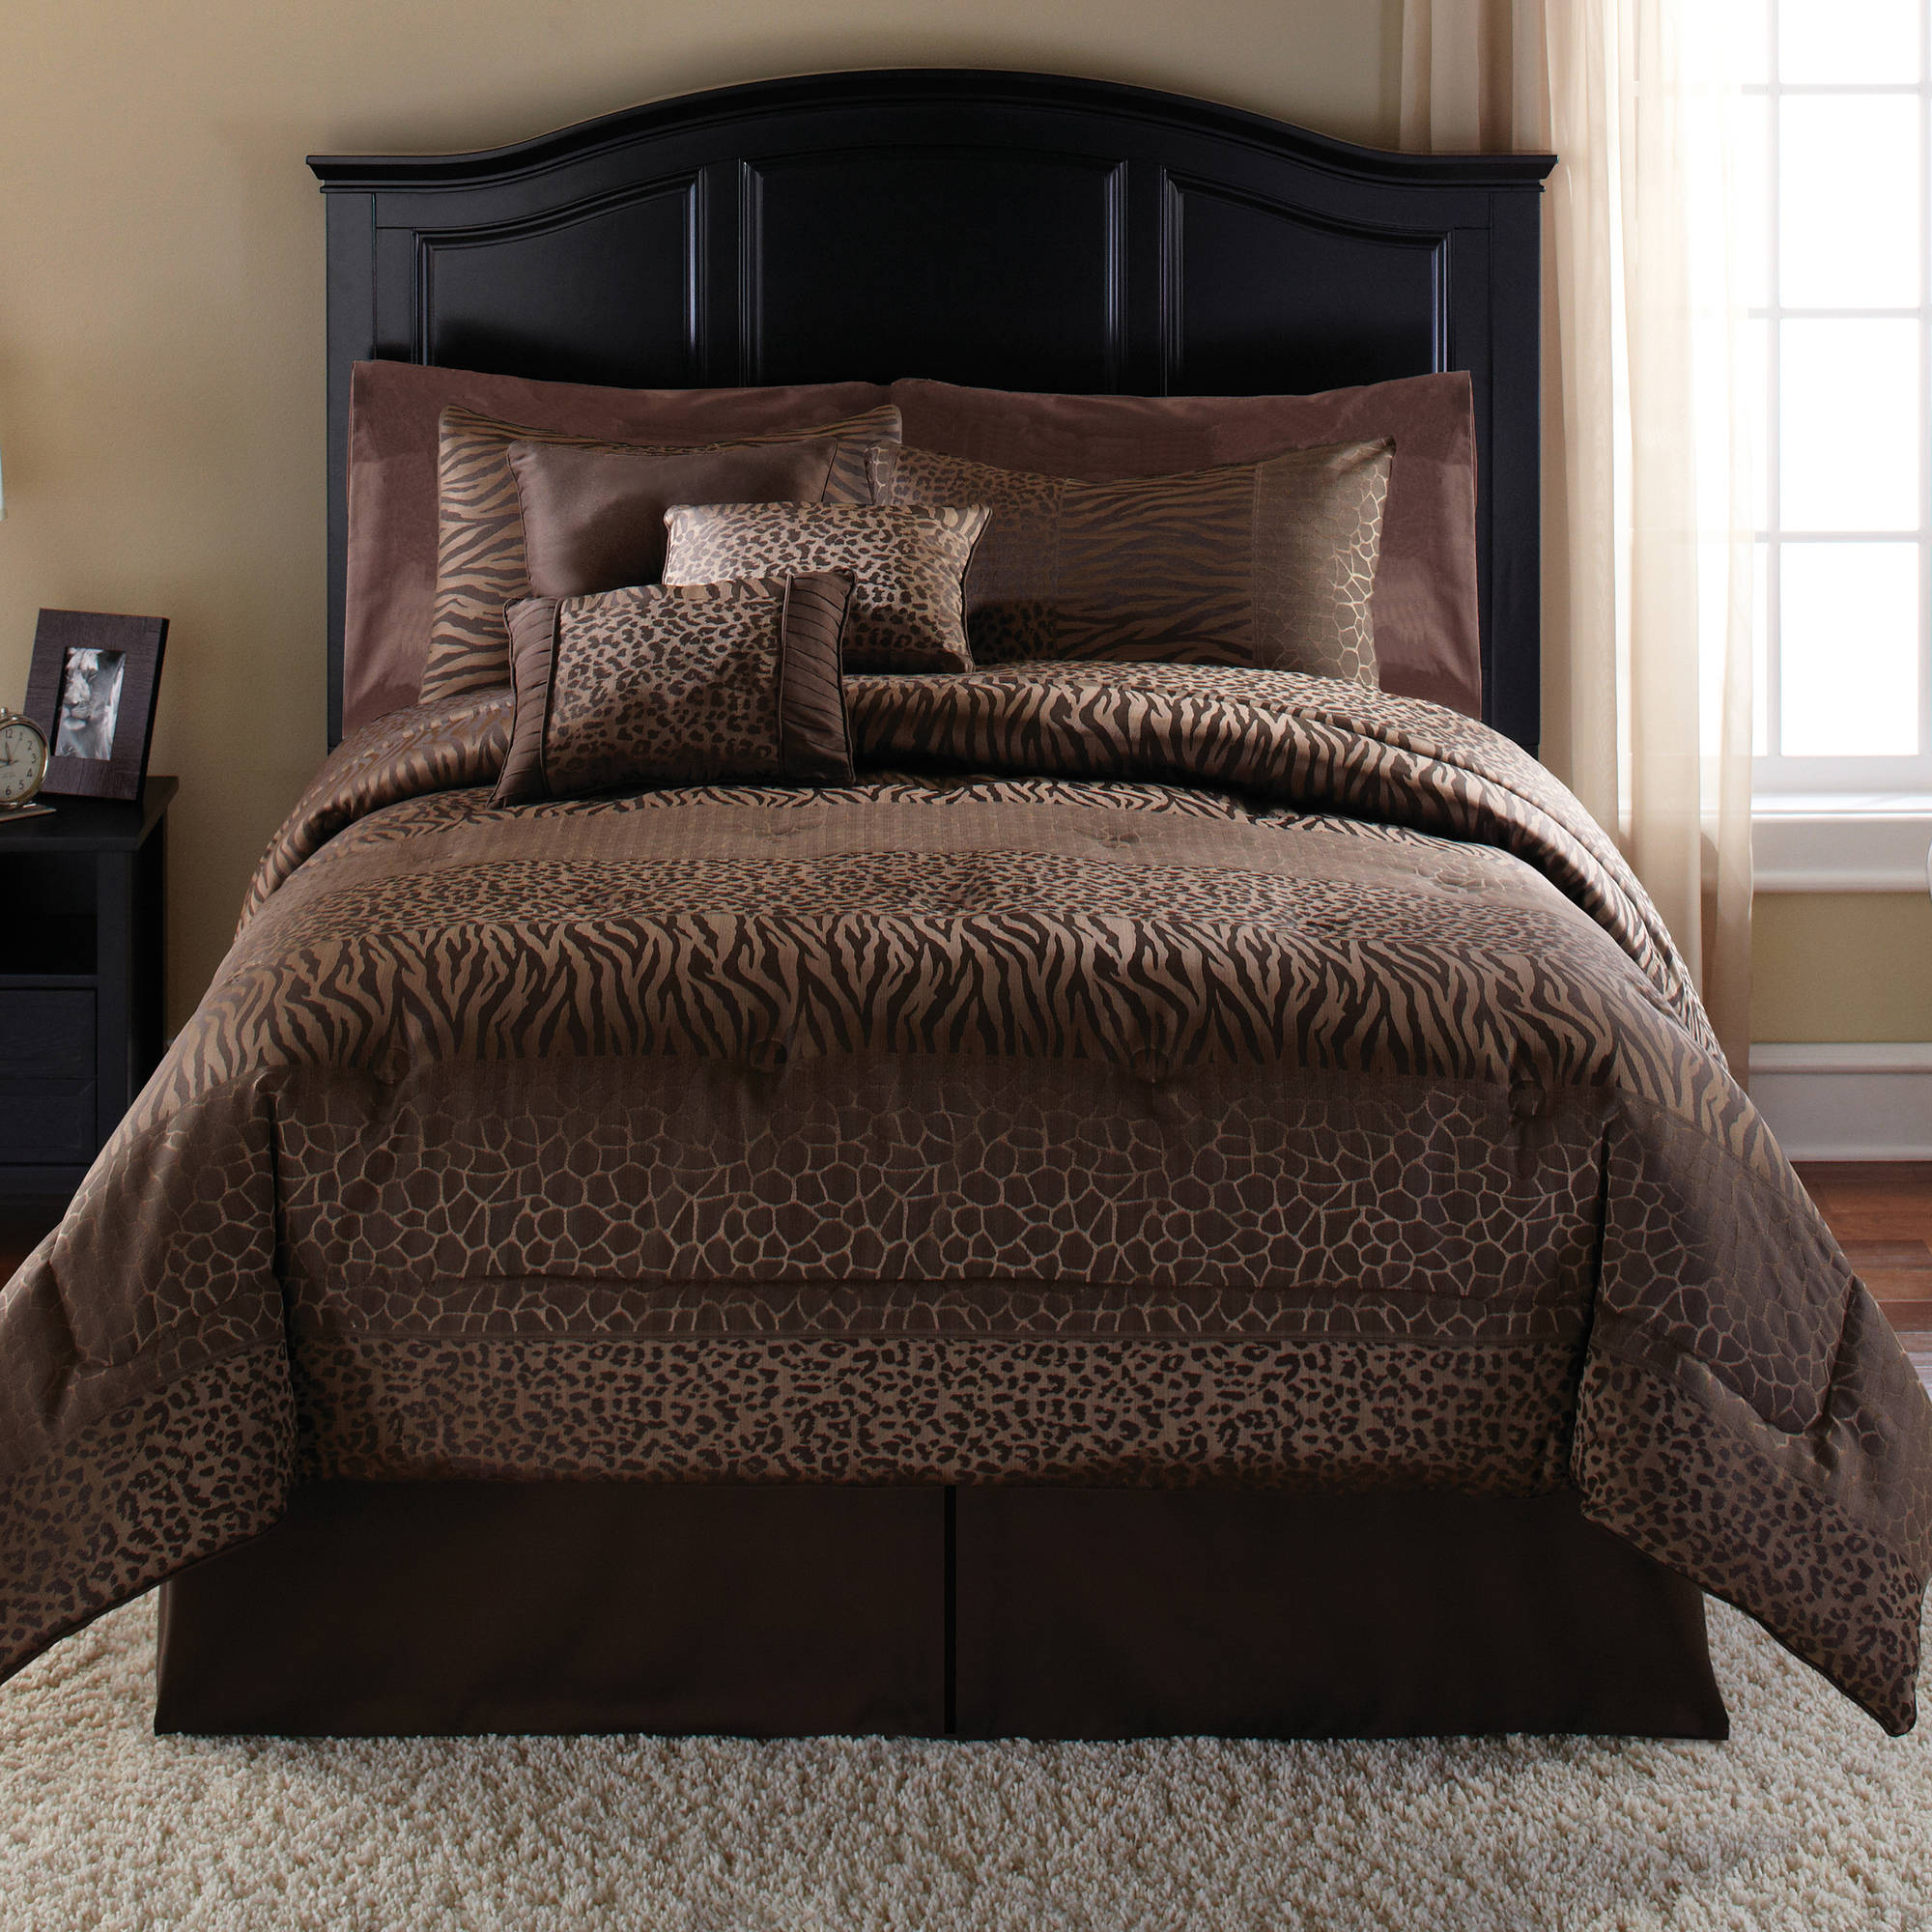 Mainstays Safari 7-Piece Bedding Comforter Set